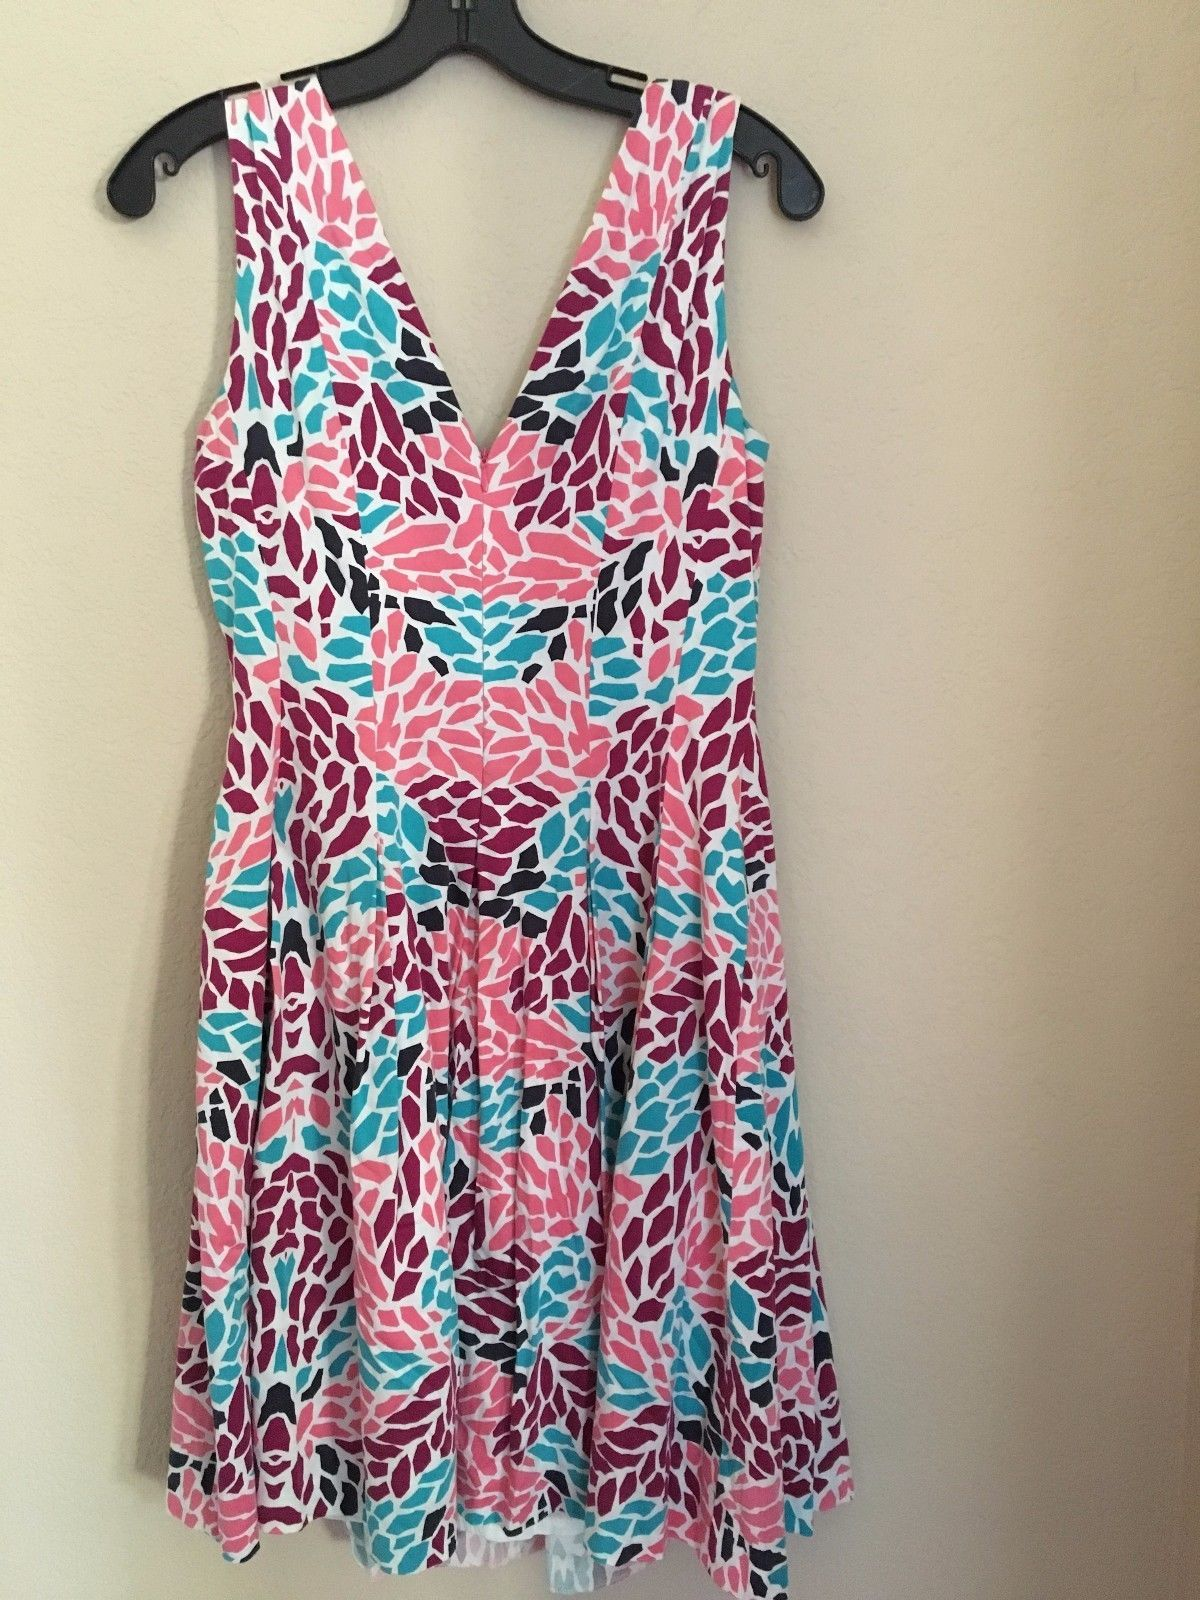 Anne Klein White V-Neck Summer Dress Size 4